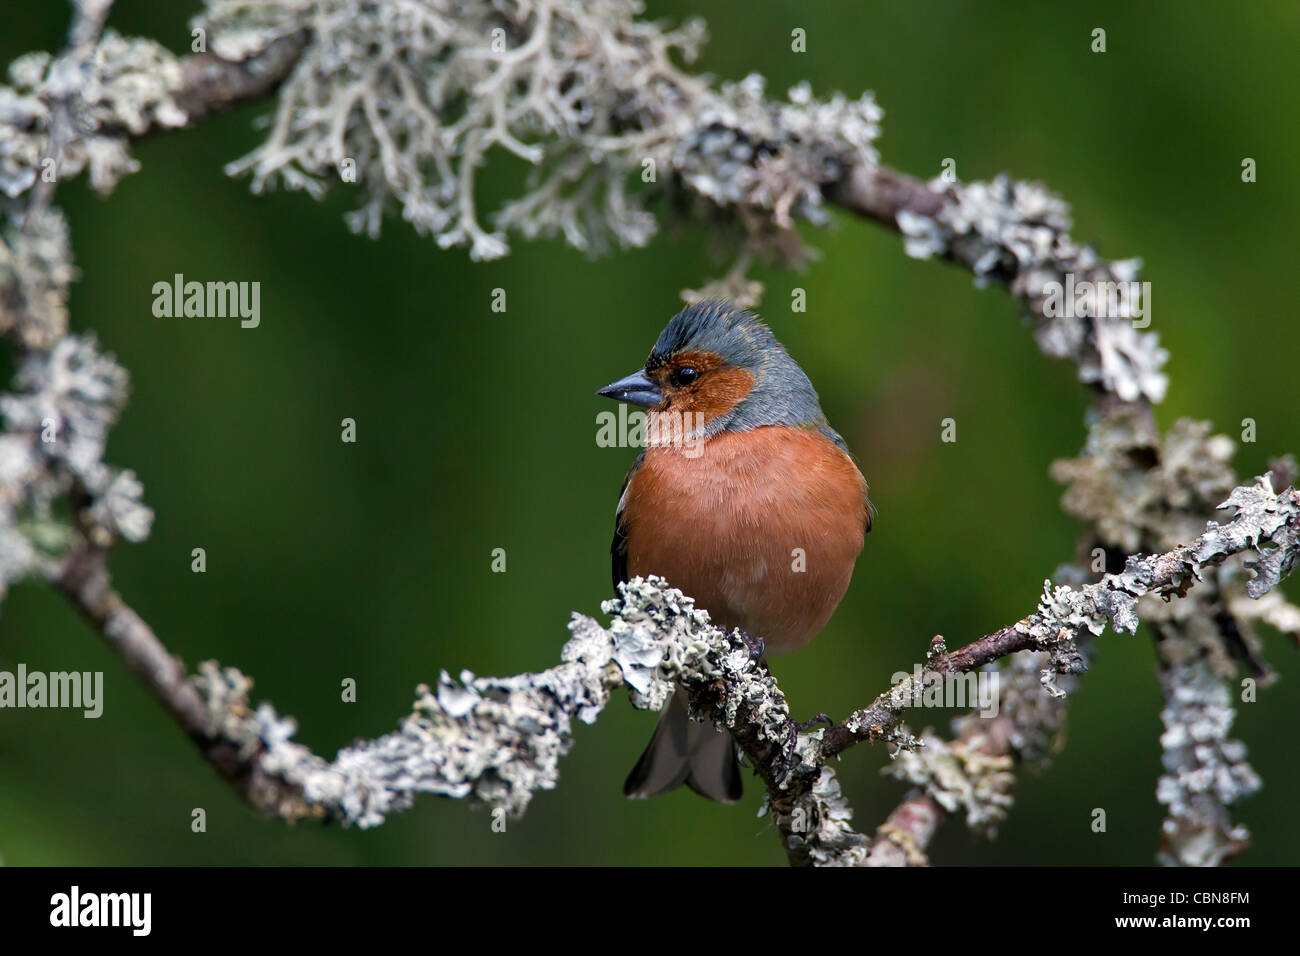 Chaffinch (Fringilla coelebs) male perched on branch covered with lichen, Sweden - Stock Image